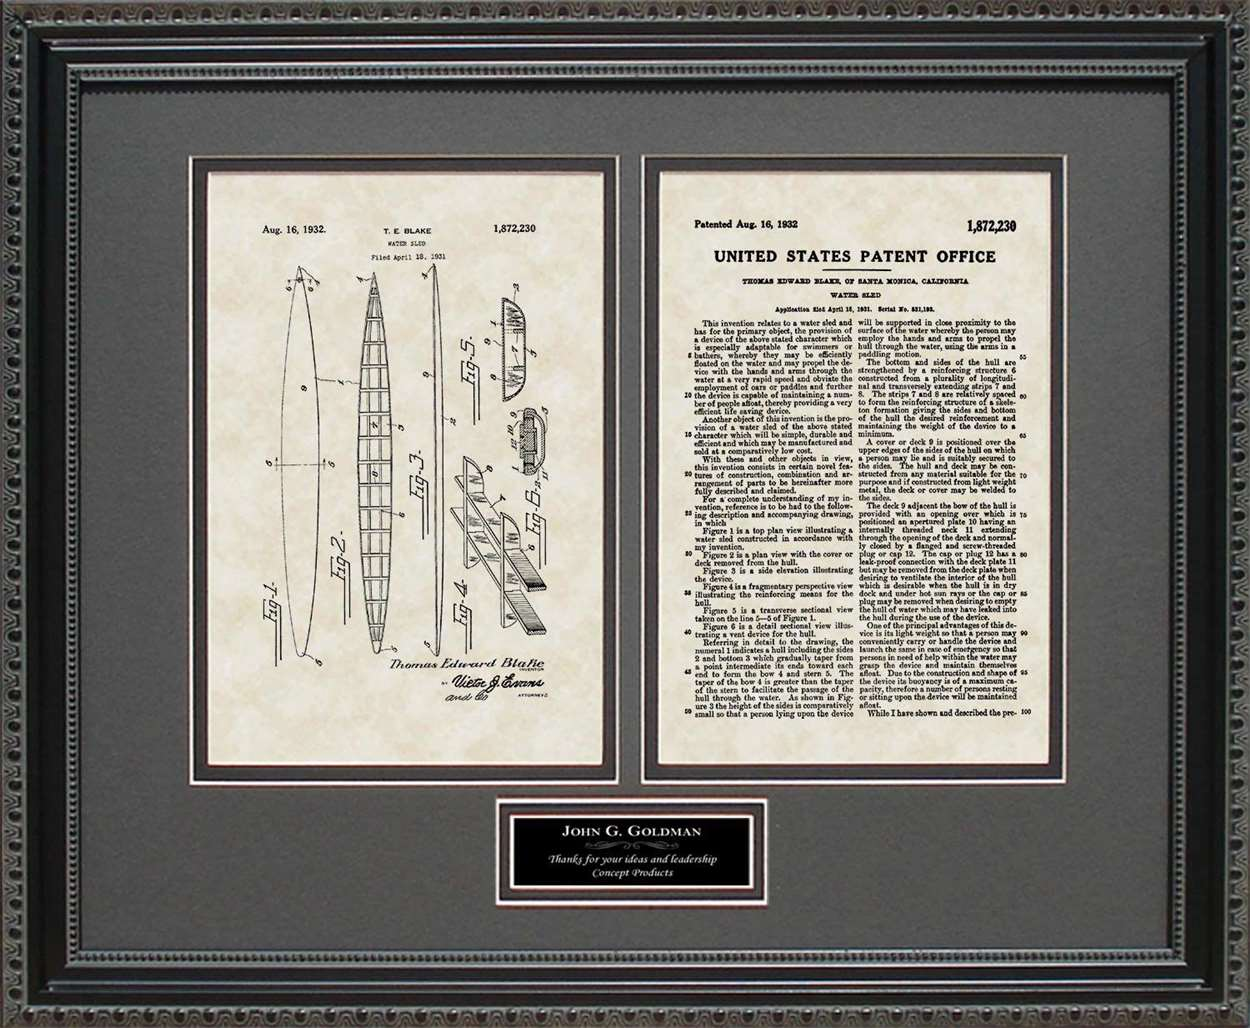 Personalized Surfboard Patent, Art & Copy, Blake, 1932